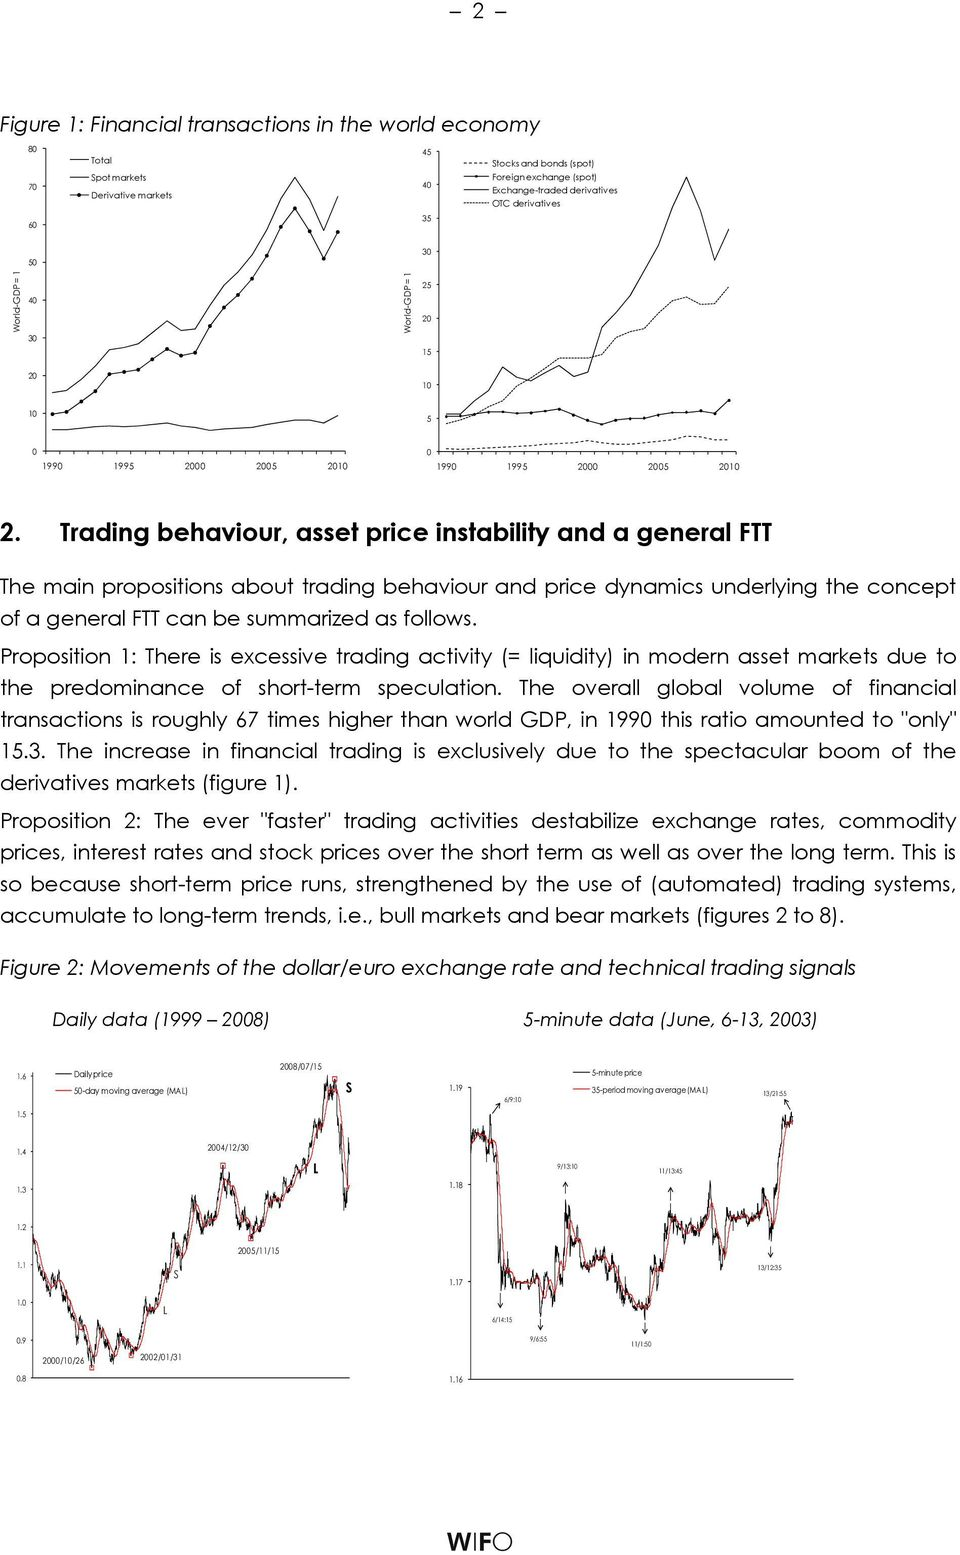 Trading behaviour, asset price instability and a general FTT The main propositions about trading behaviour and price dynamics underlying the concept of a general FTT can be summarized as follows.